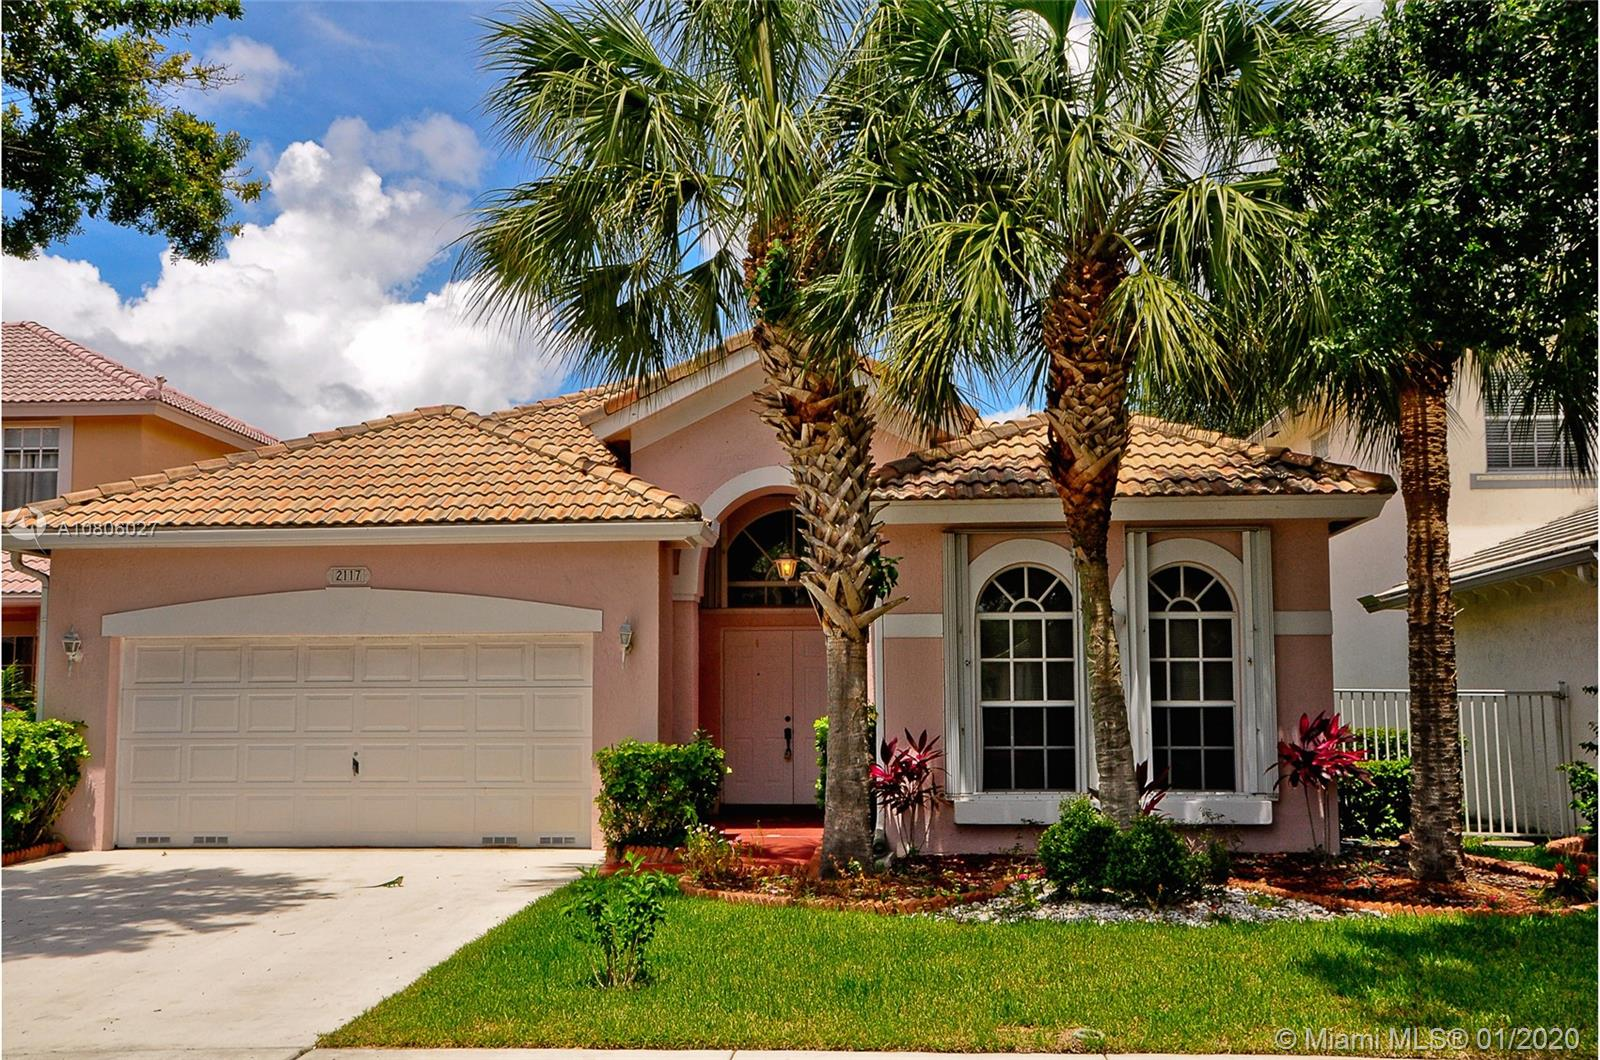 2117 NW 49th Ave, Coconut Creek, FL 33063